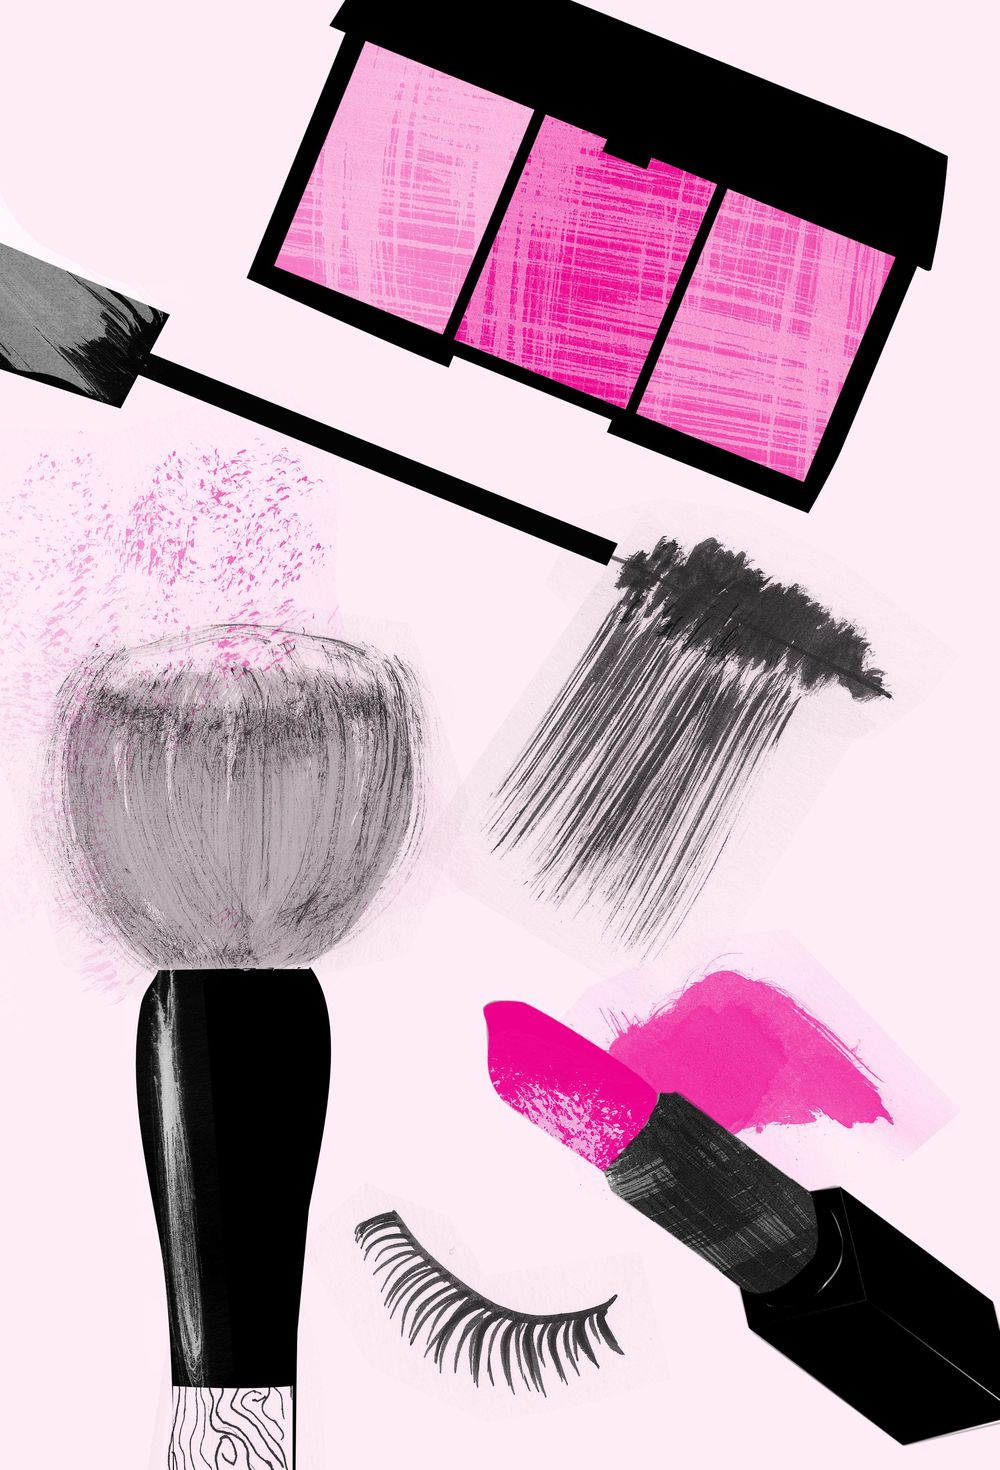 Essentials in My Makeup Kit - image 6 - student project